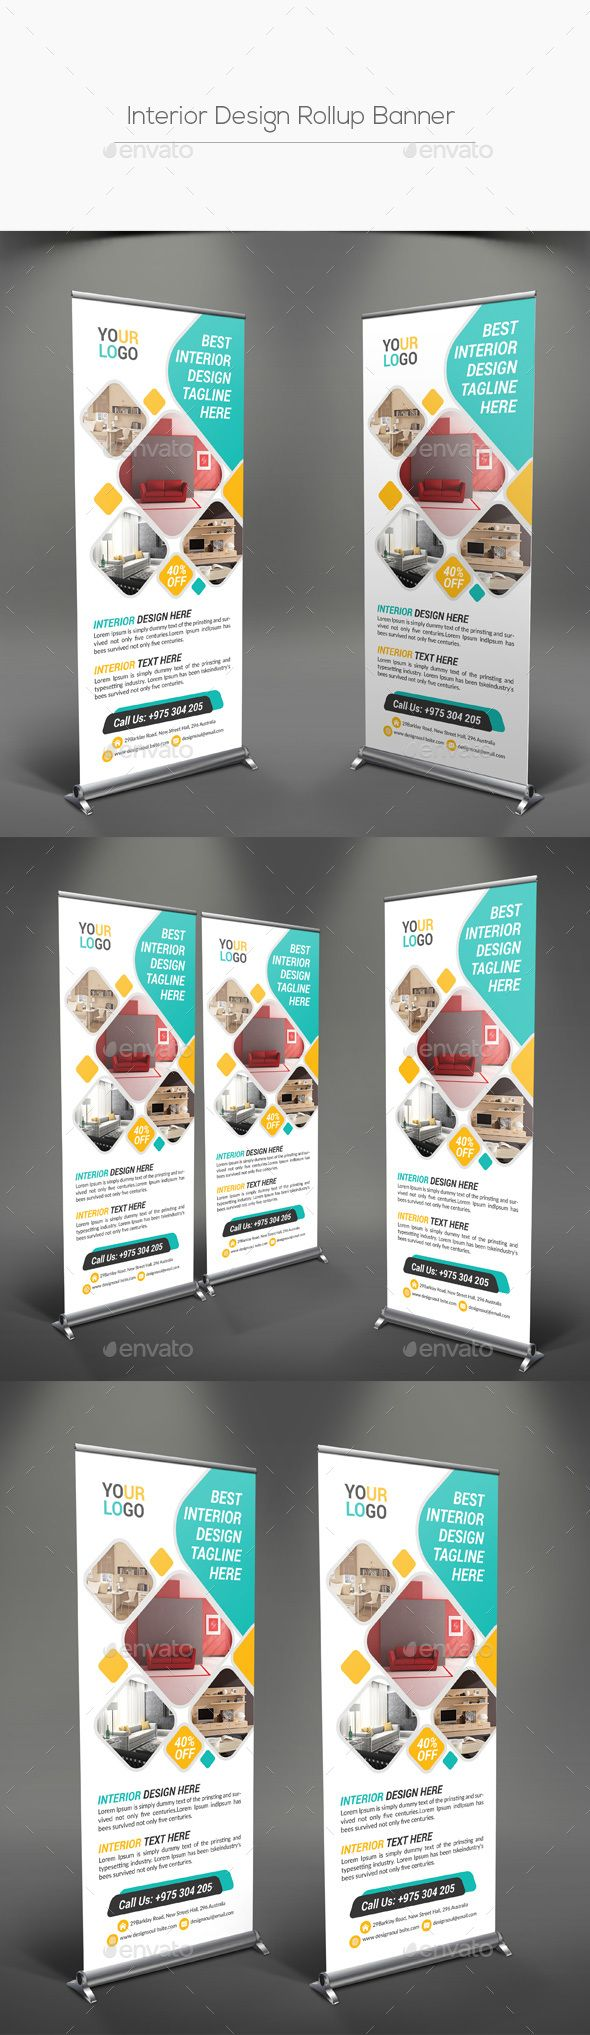 Interior design rollup banner template psd download here http graphicriver